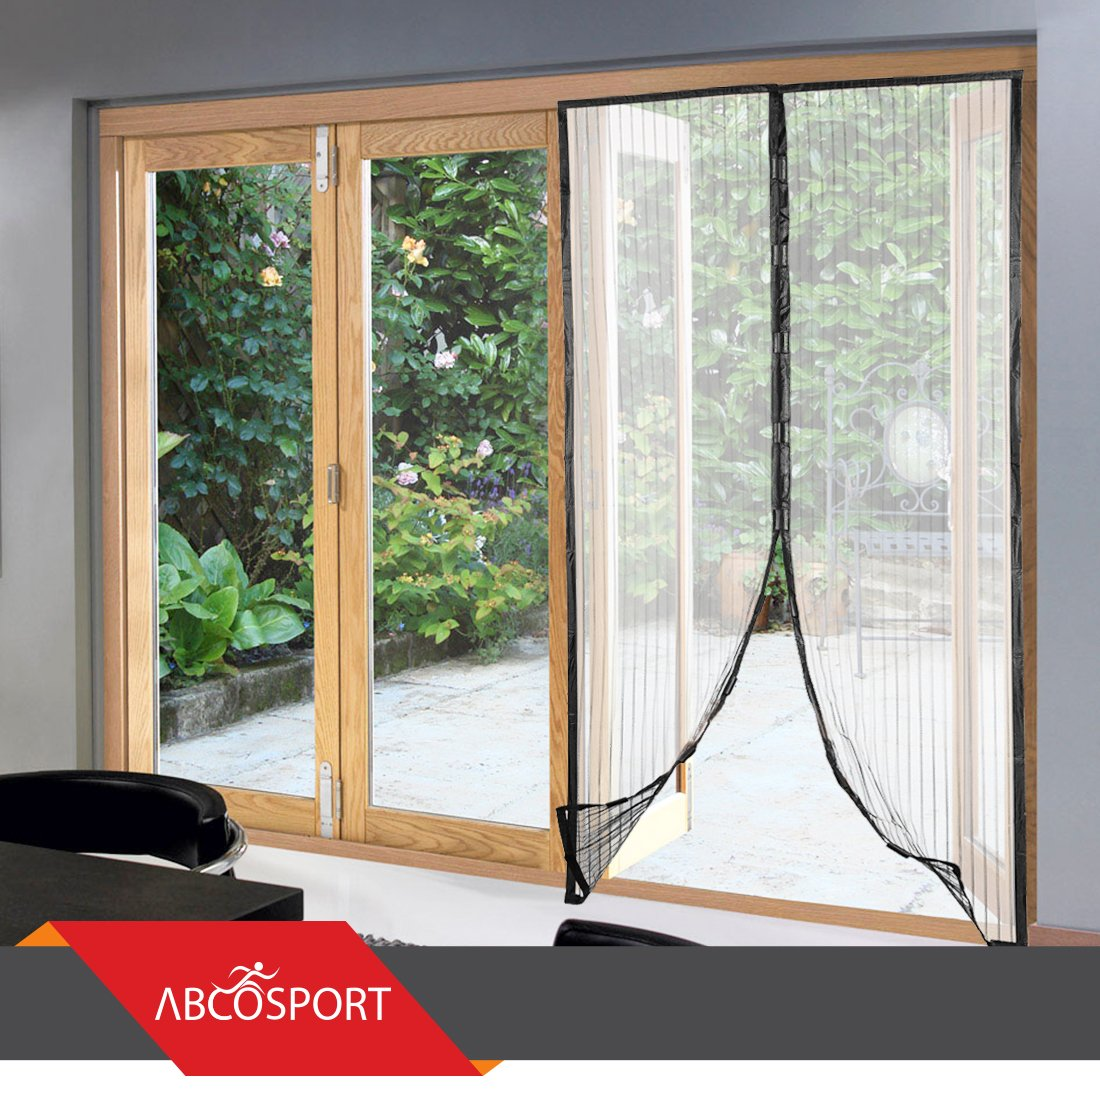 magnetic screen door keeps the fresh air in and the bugs out mesh comes with velcro or pins closes with the 18 powerful magnets fits